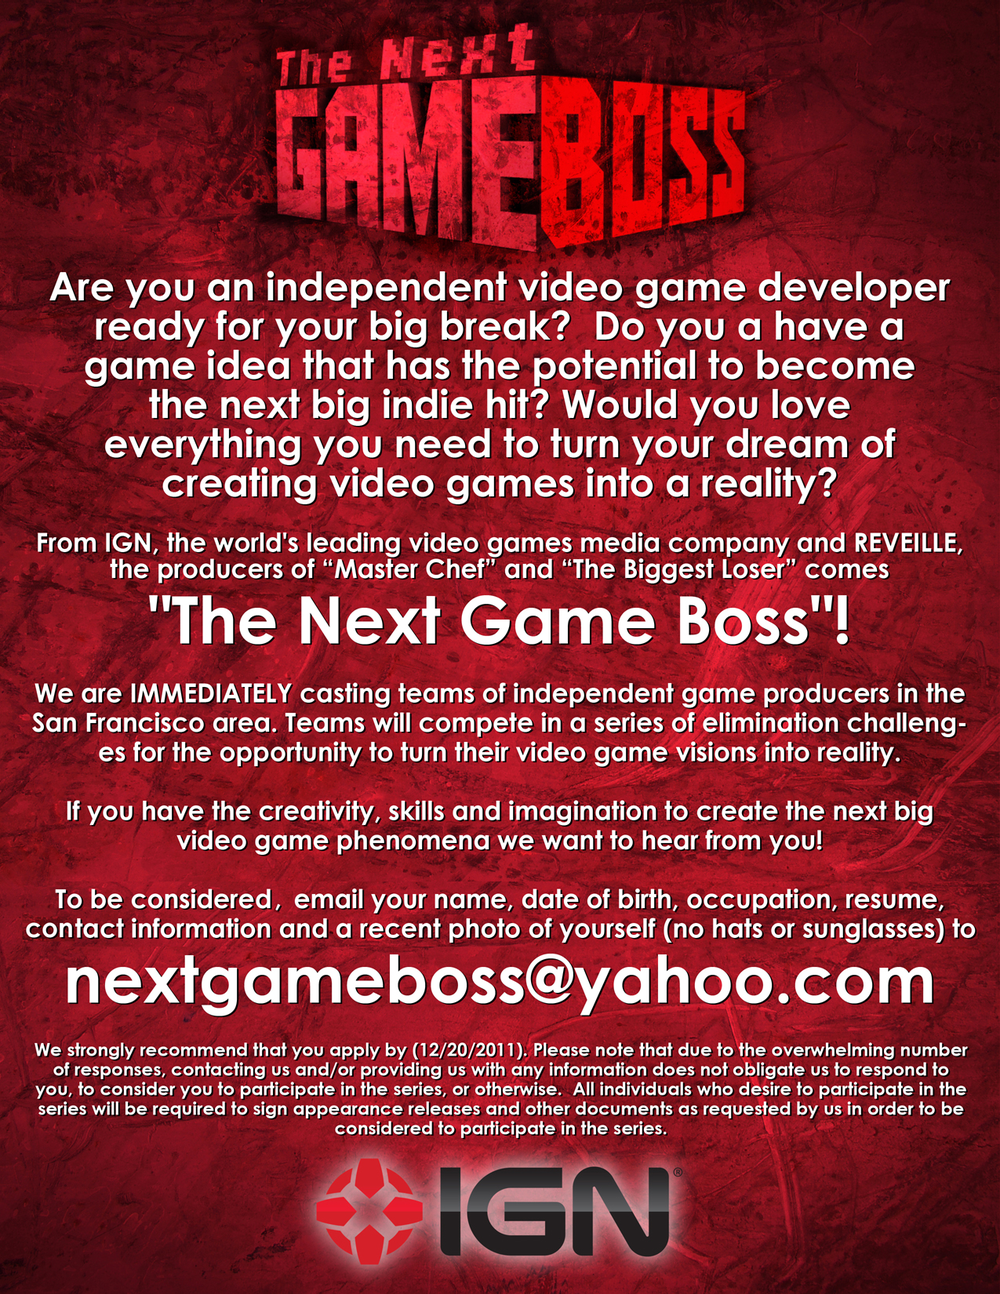 IGN is immediately looking for bay area video game developers!